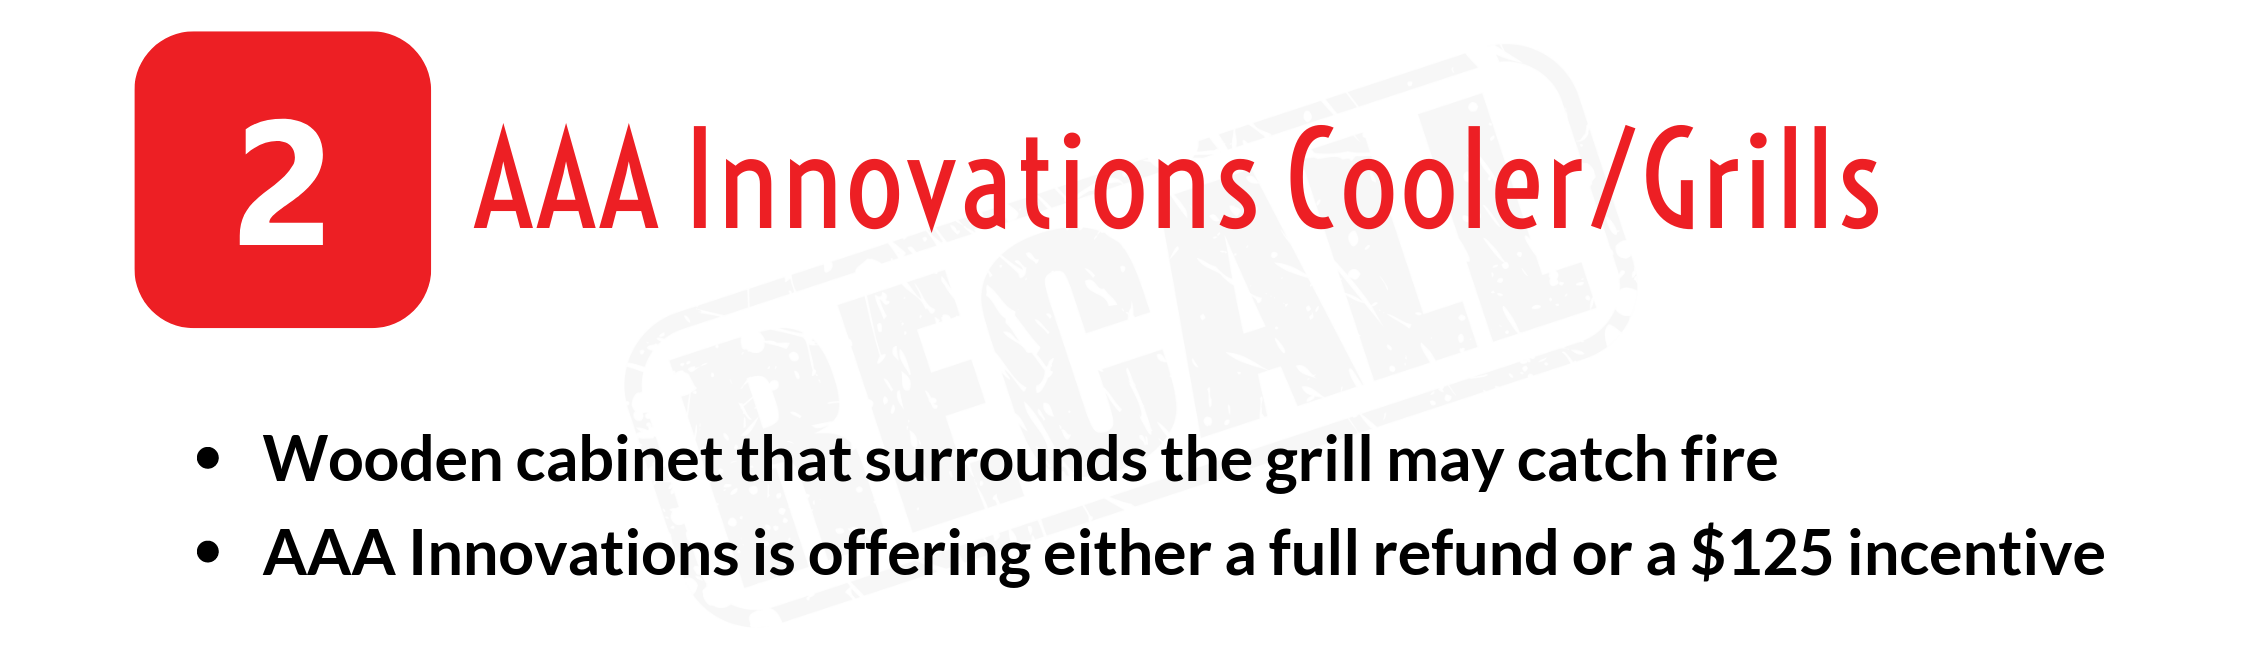 AAA Innovations Cooler Grills